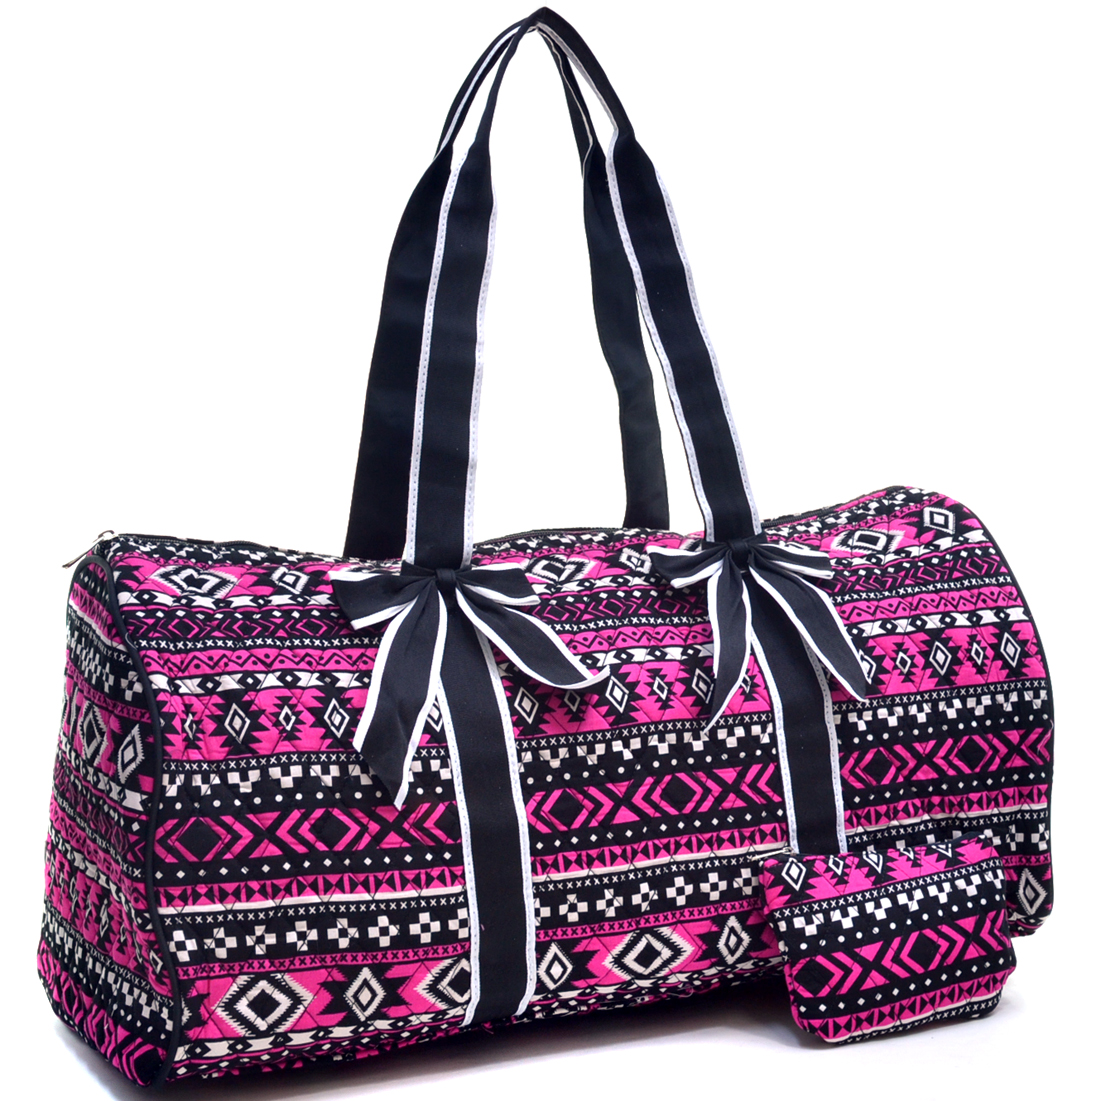 Quilted Aztec Print Duffel Bag with Removable Bows